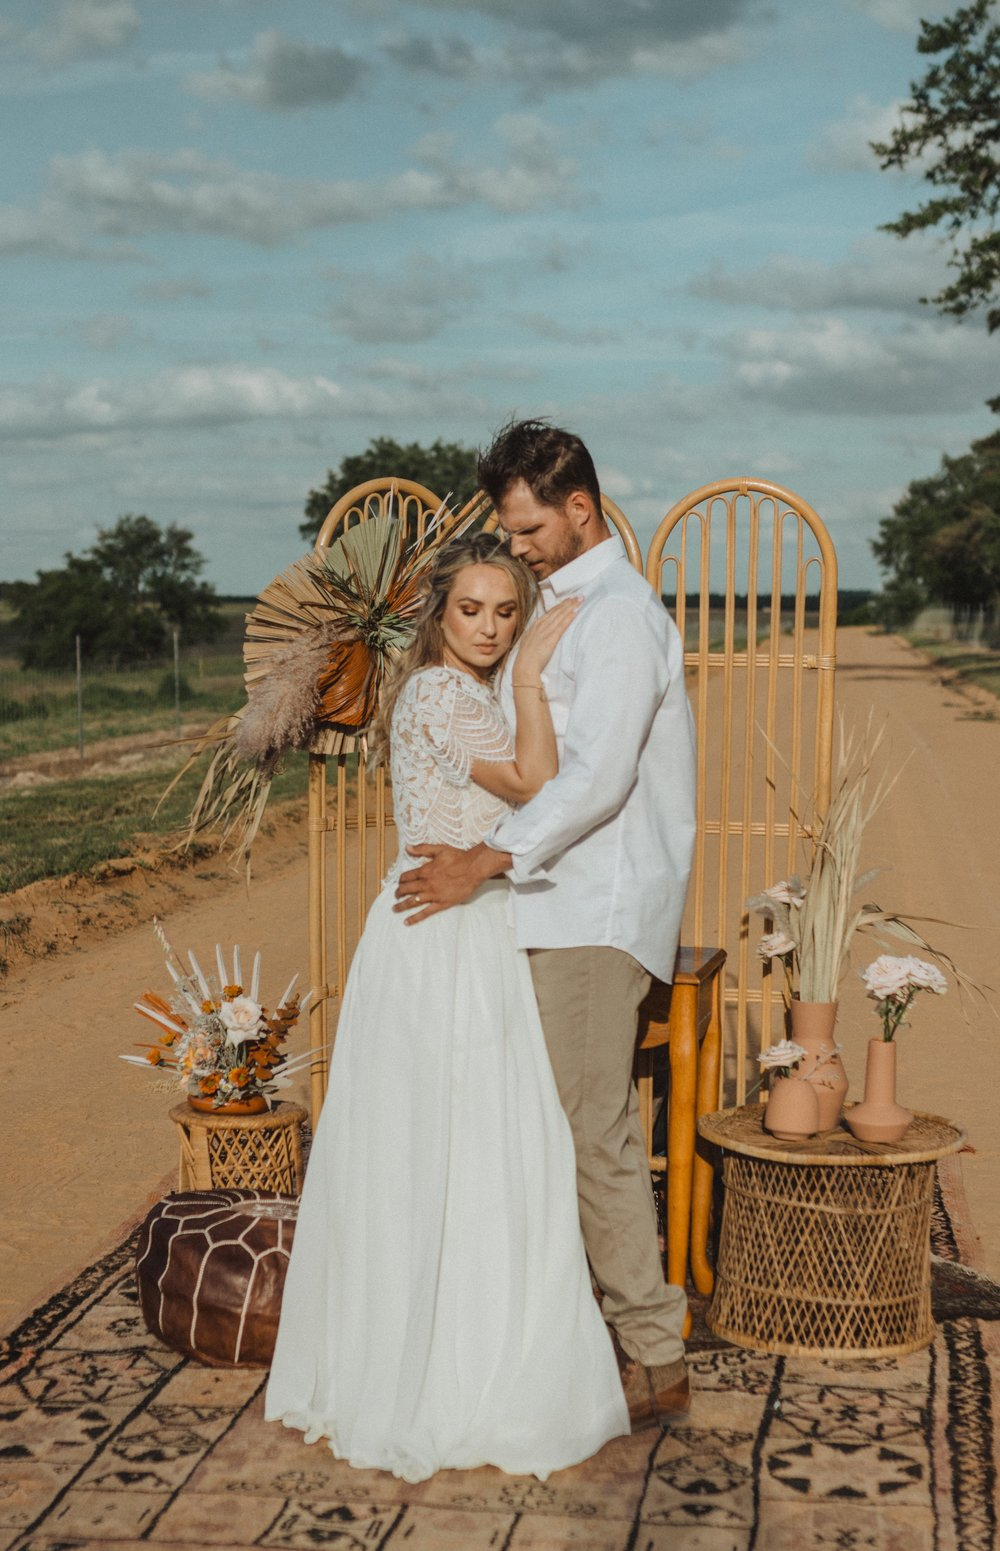 Boho+Elopement+Gypsy+Bride+and+Groom